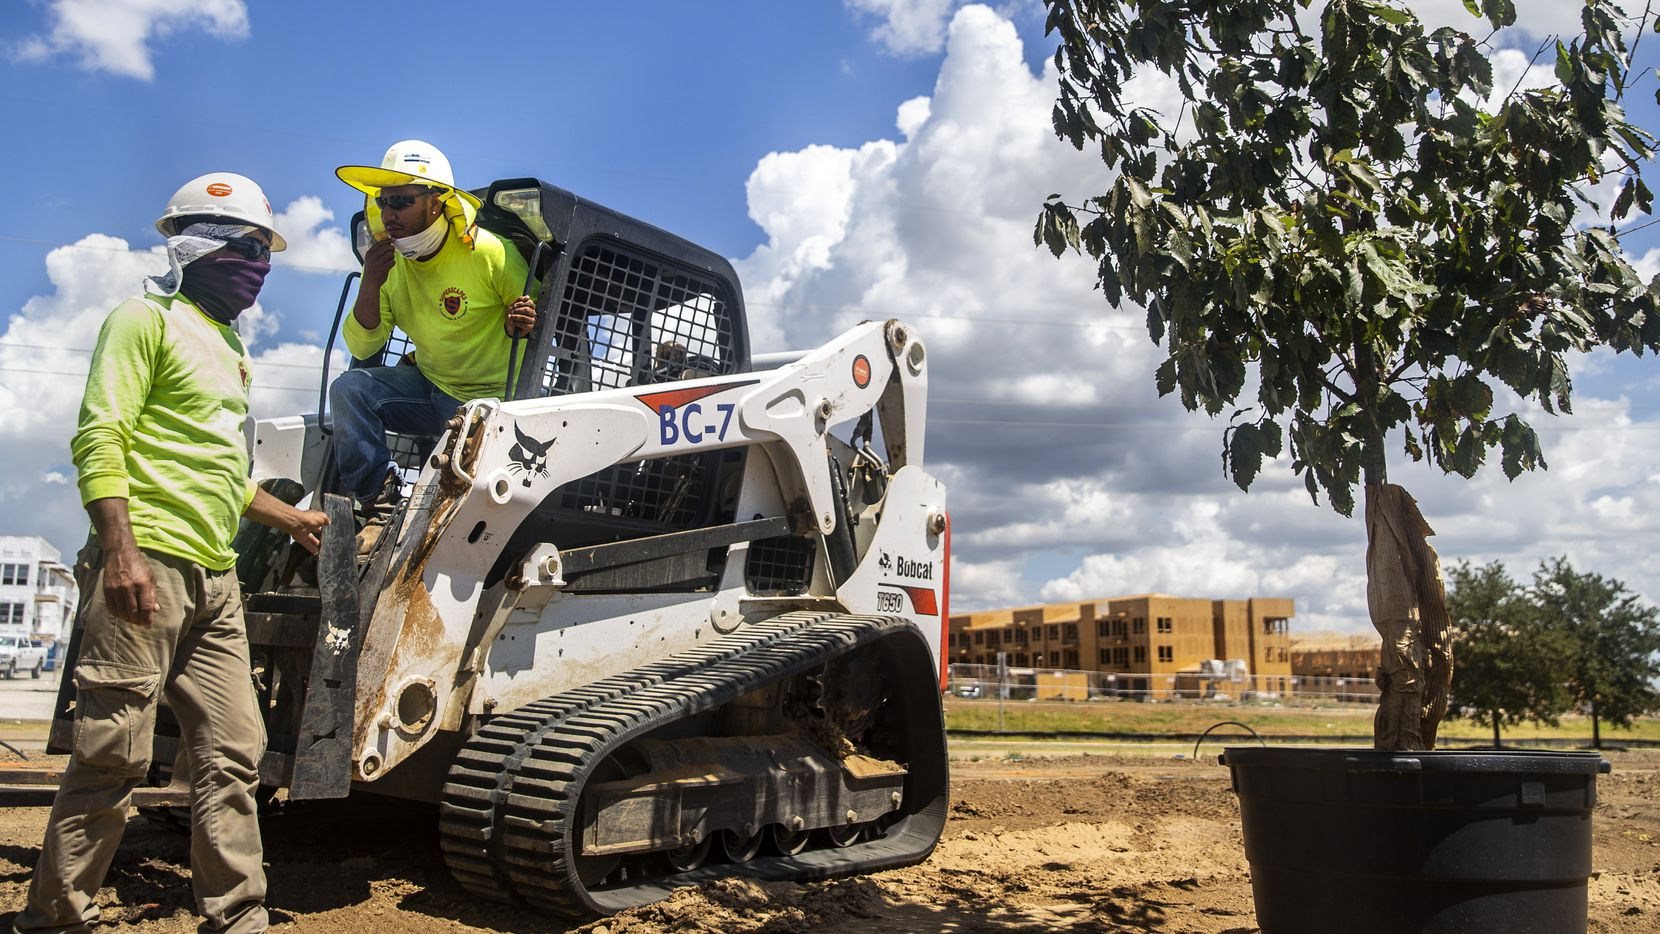 Superscapes landscaping foreman Martin Guerrero (right) works with landscaper Jesus Oliva at a job site at Lakeside Center in Flower Mound on Aug. 27.